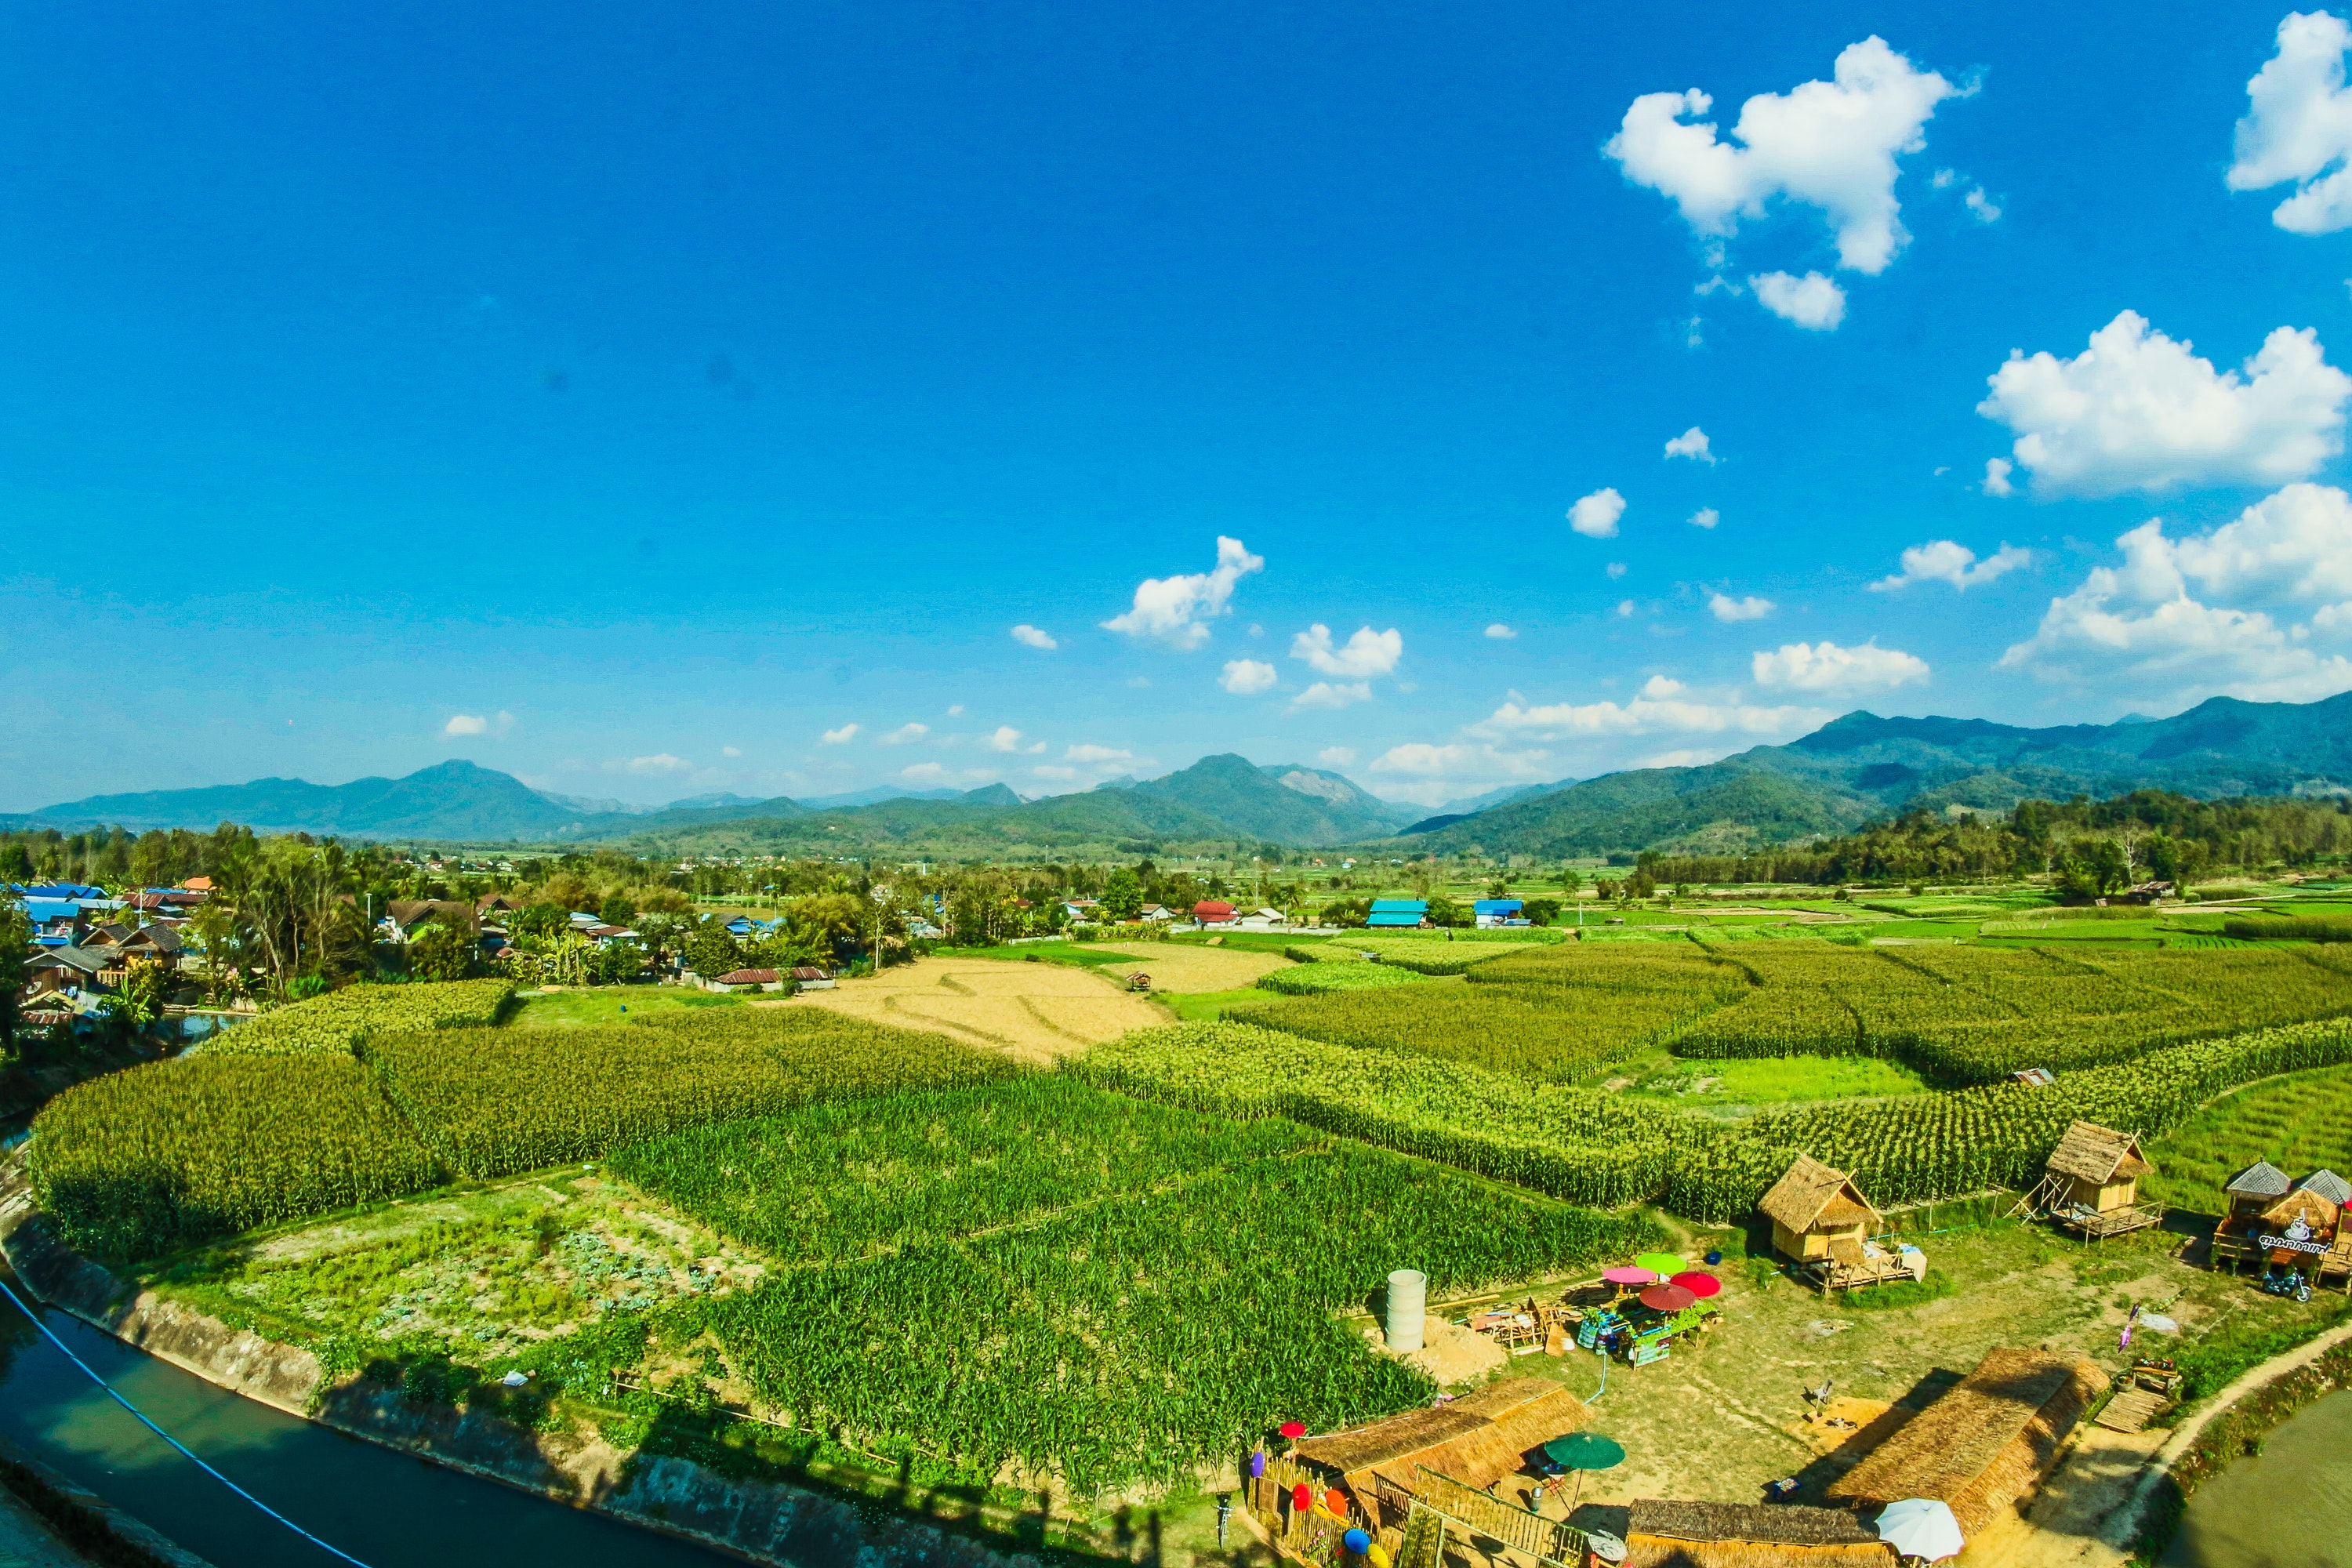 Houses near the rice wheat field under the clear blue skies photo